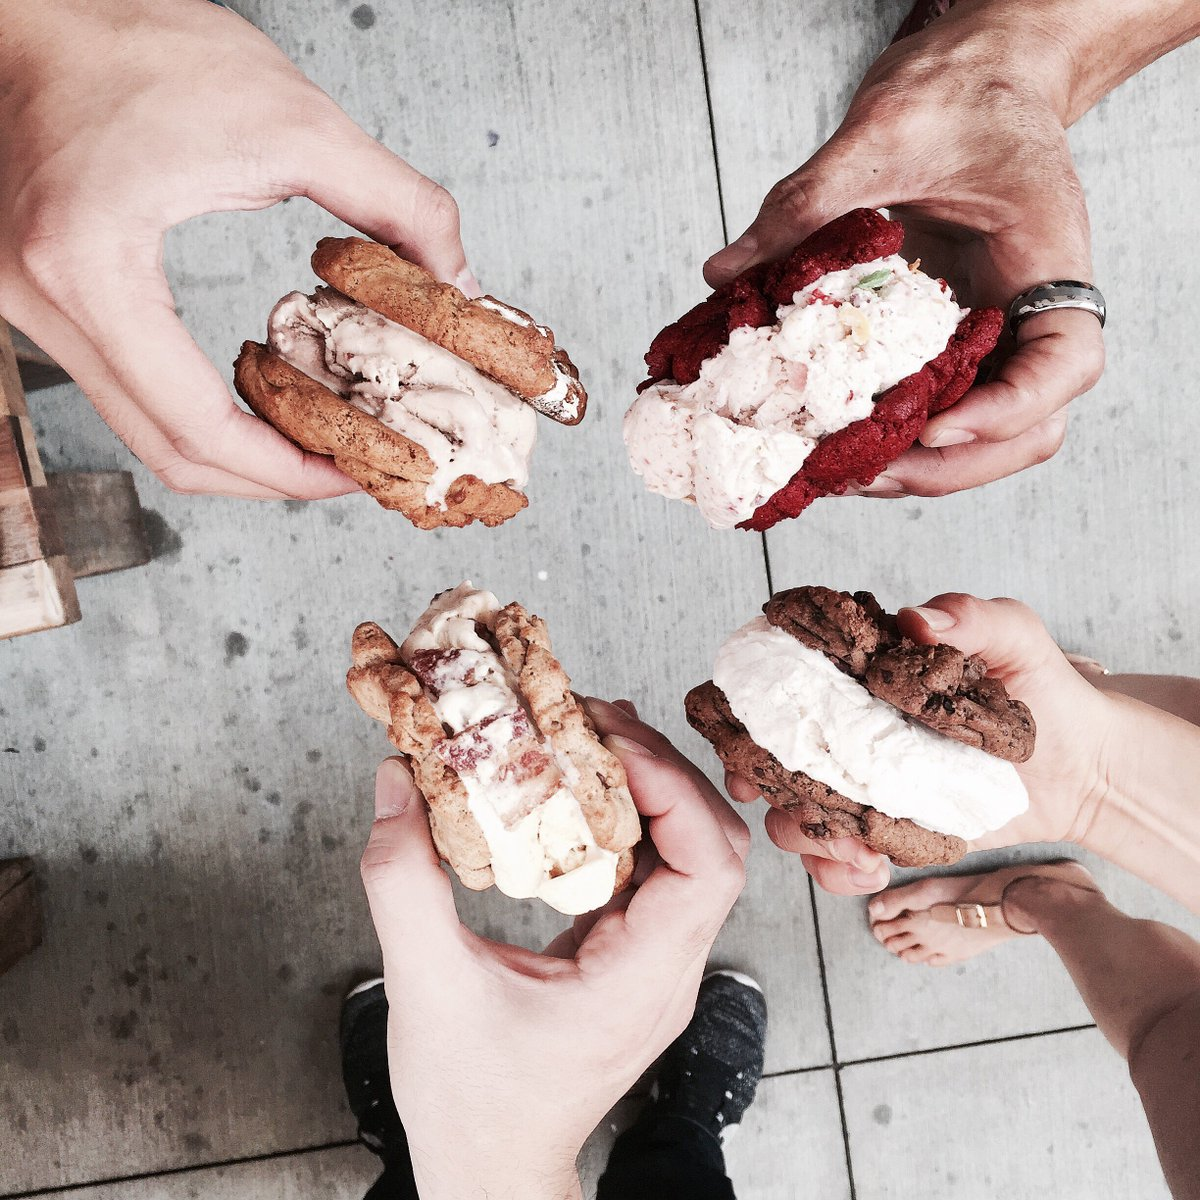 #WestSide CNC fans!! #foodtruck + icecream sammiches will be at the #SantaMonica Airport #ArtWalk tomorrow 12-5pm! https://t.co/5gN5wfLbRv